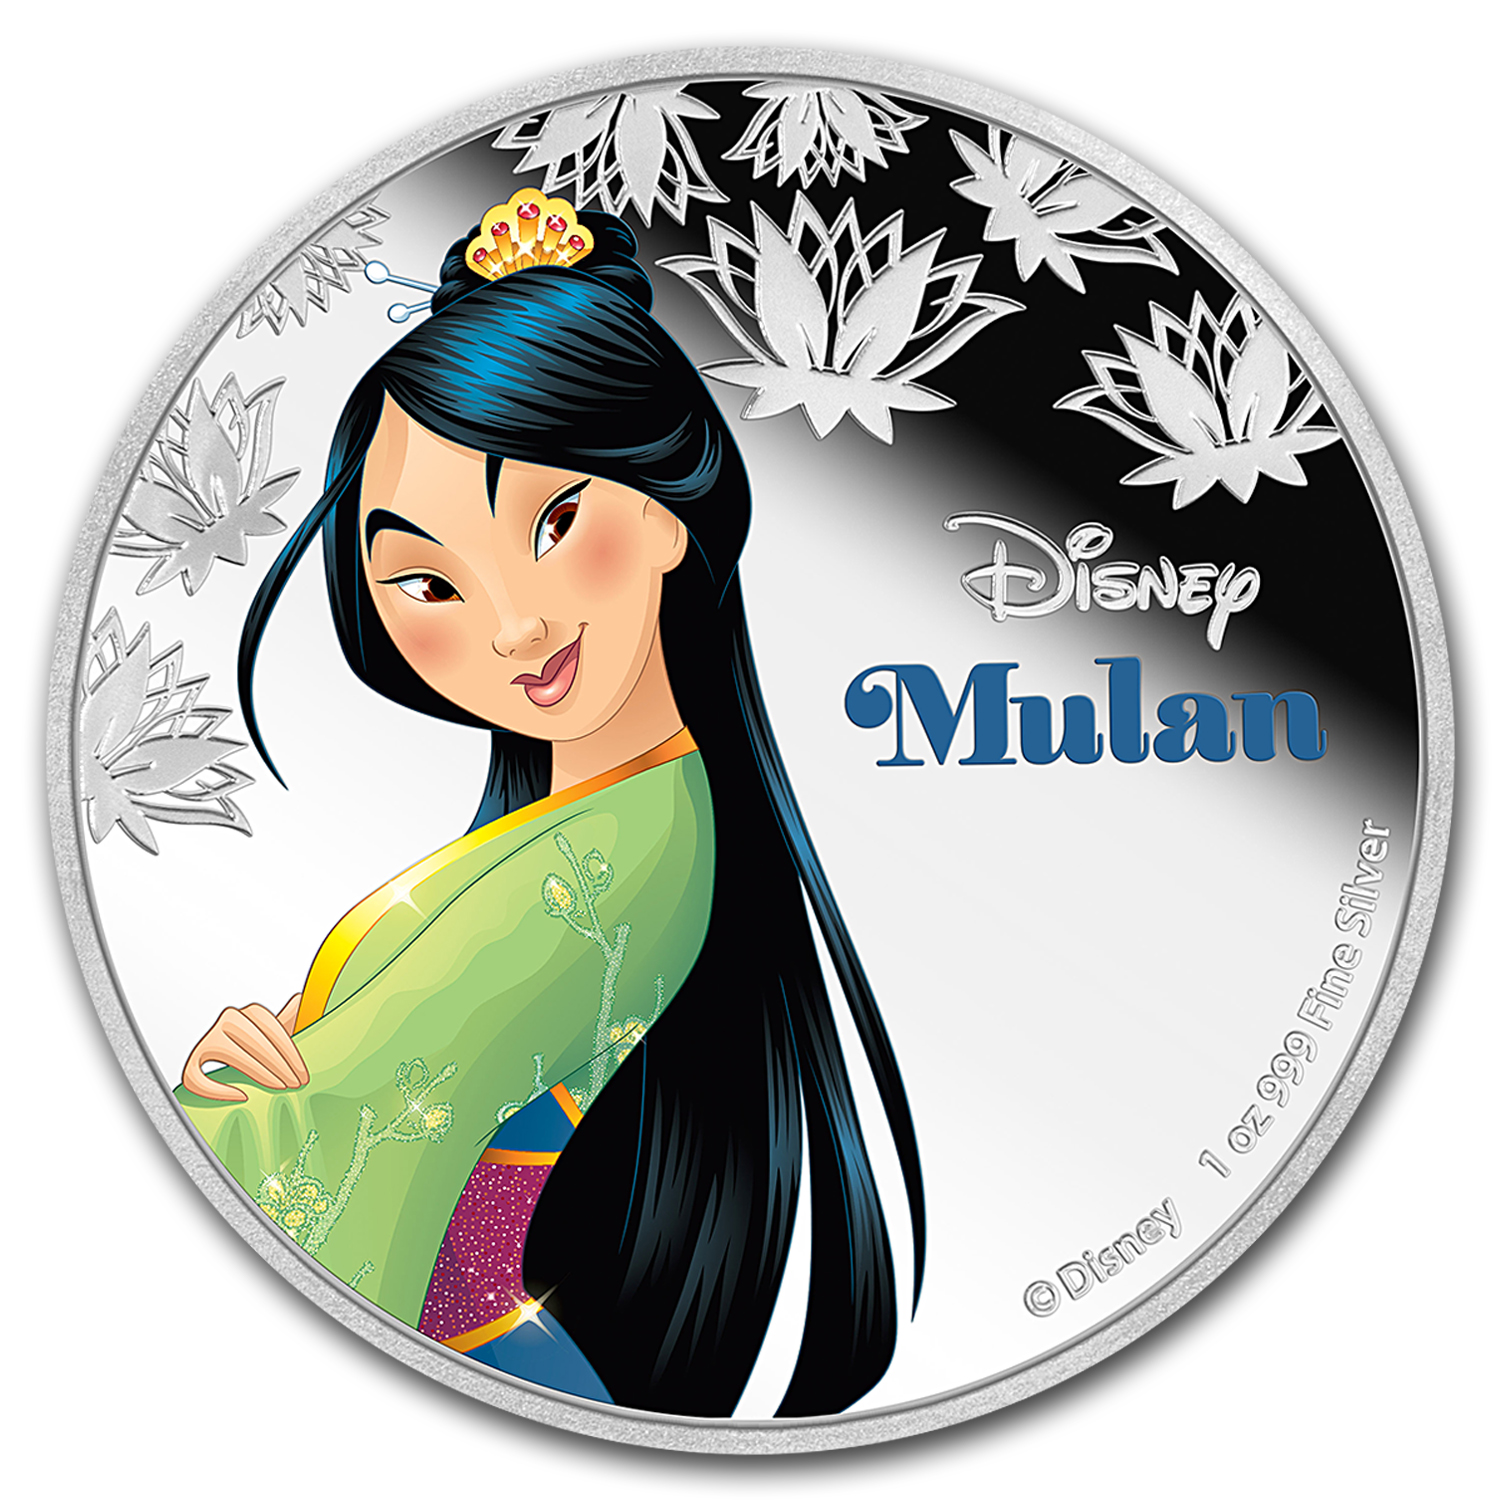 2016 Niue 1 oz Silver $2 Disney Princess Mulan